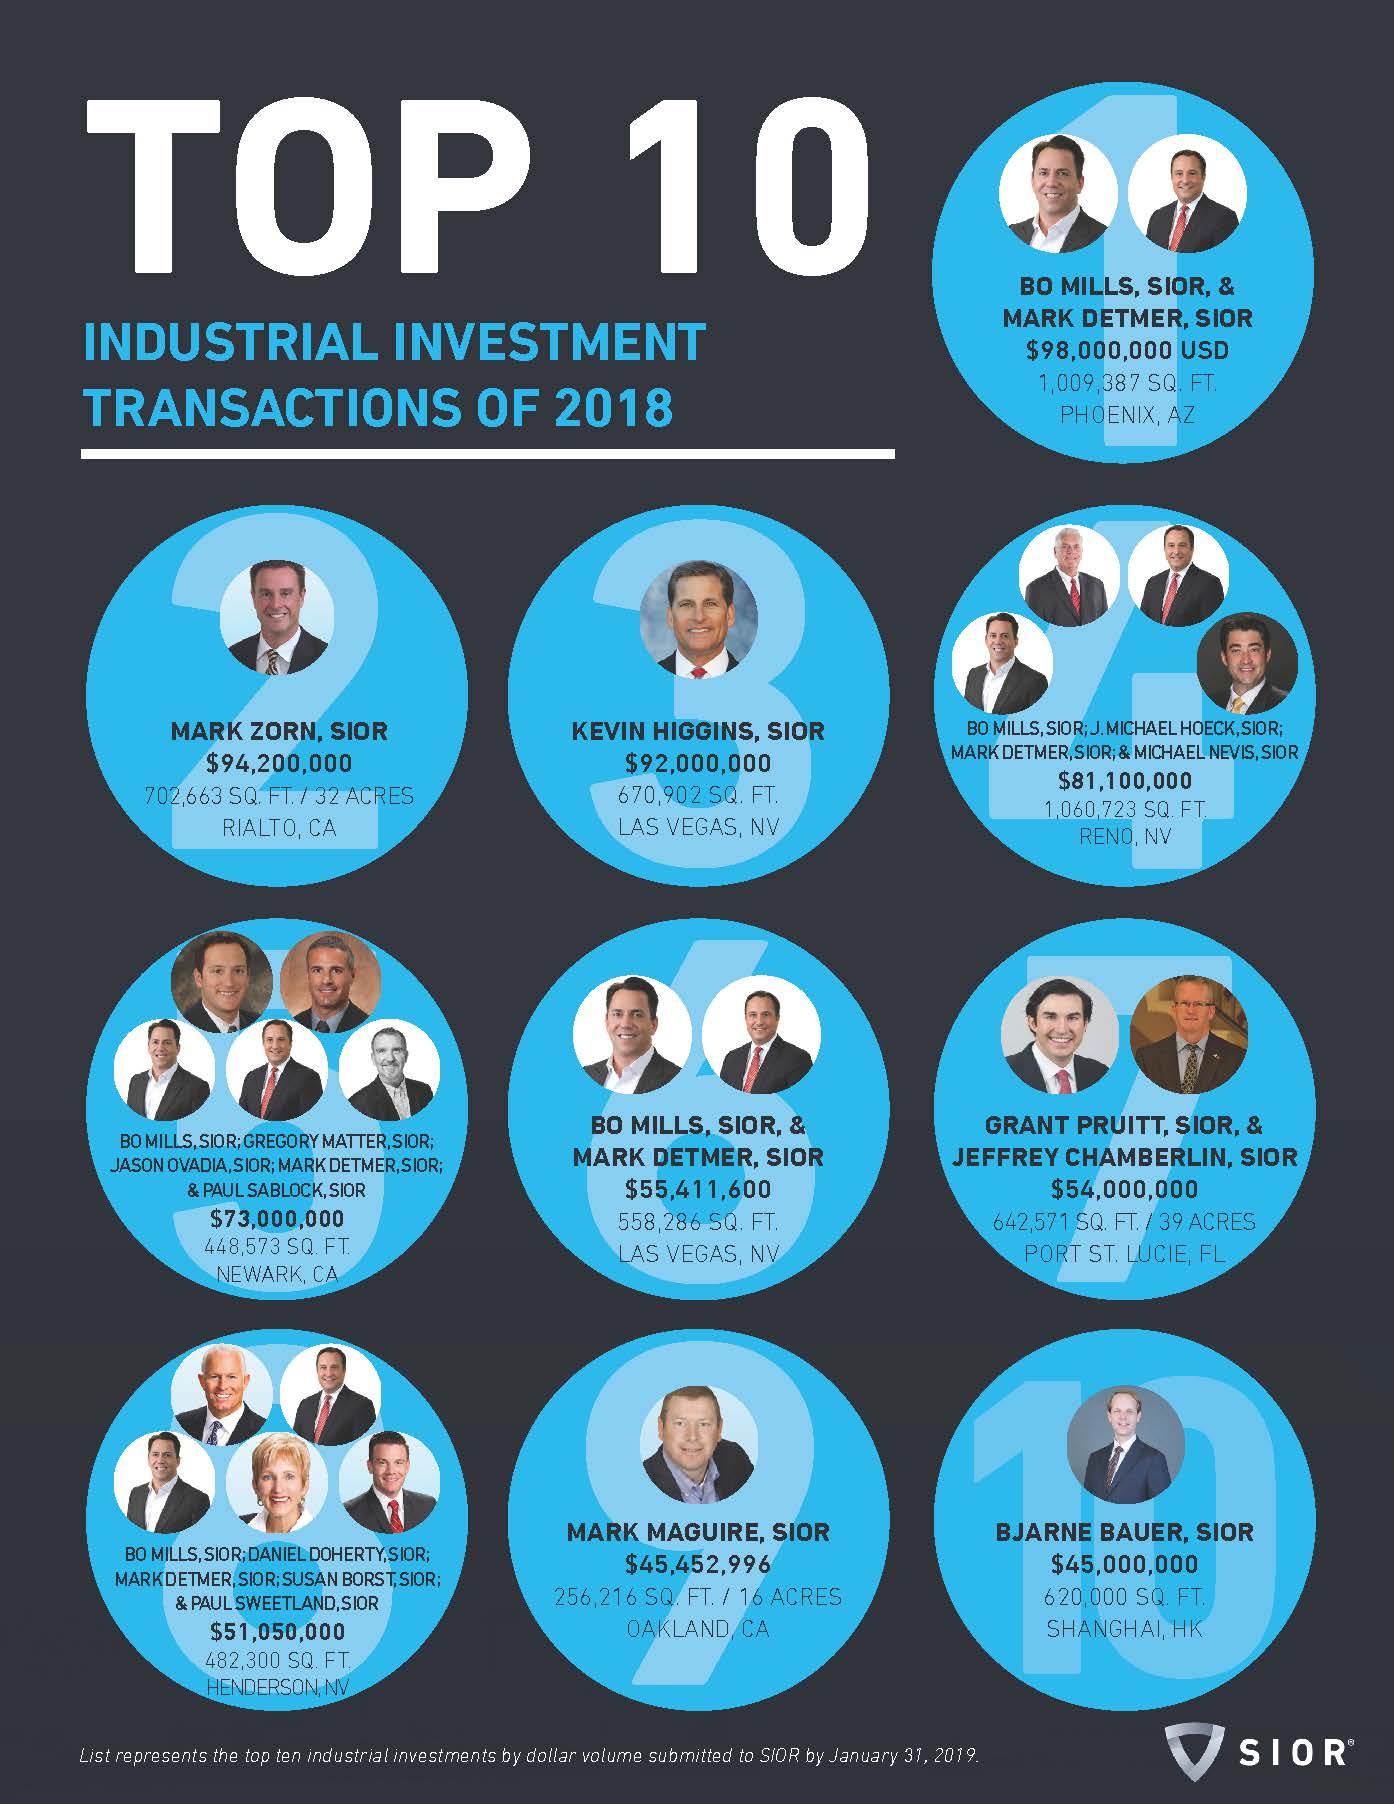 Top 10 Industrial Investments of 2018